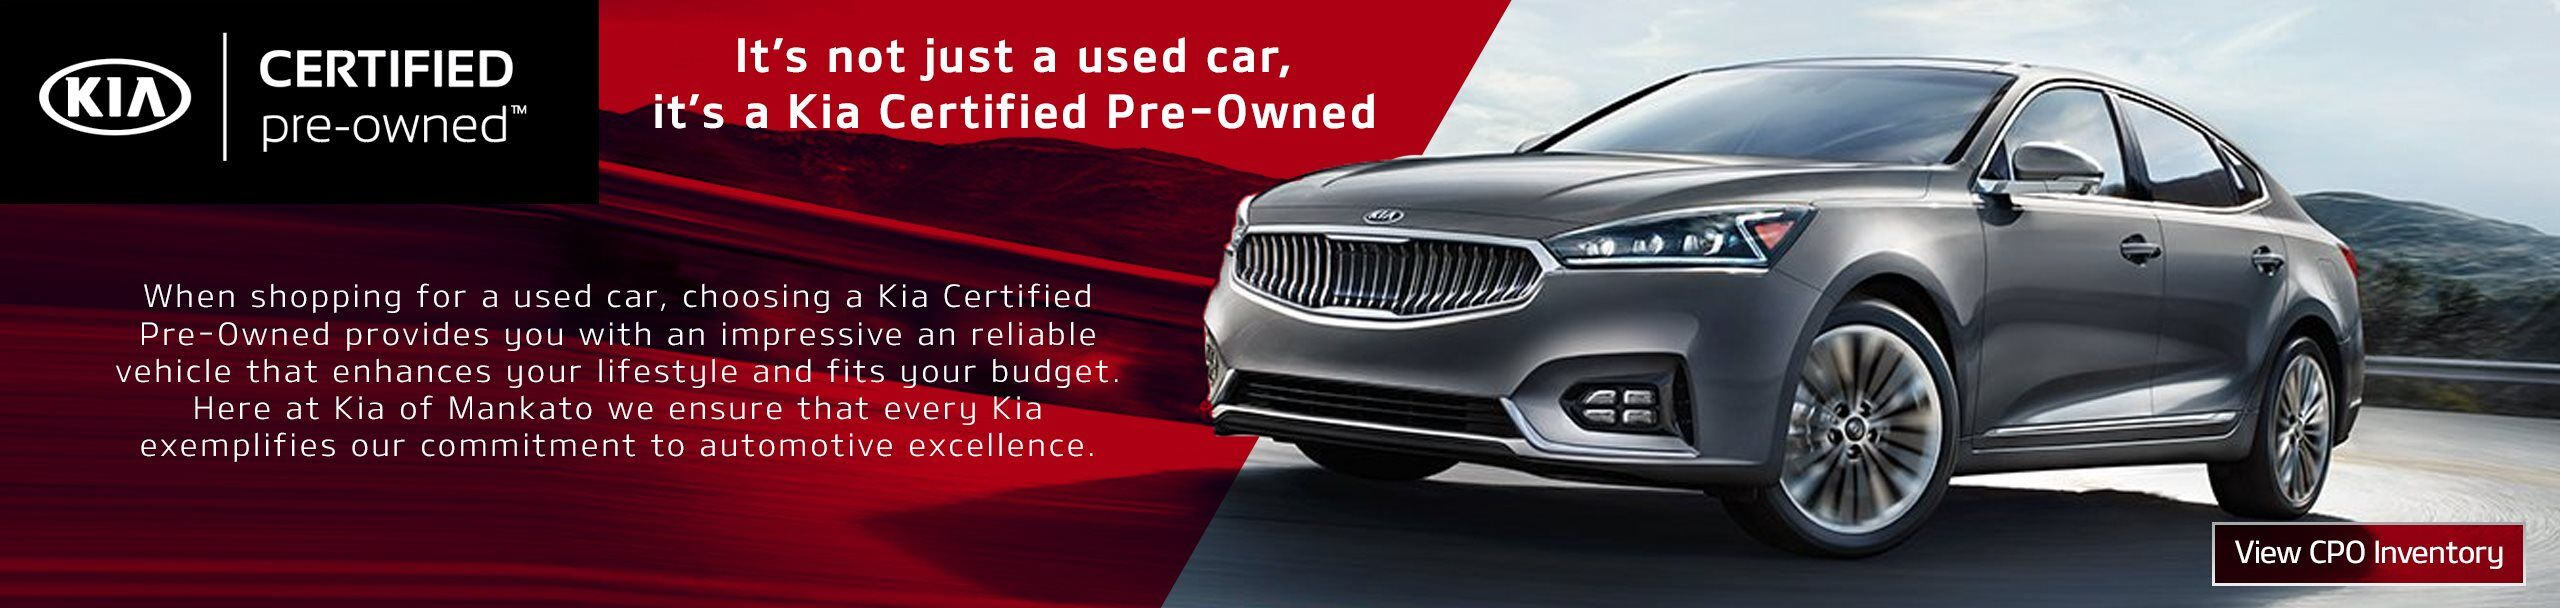 Certified Pre Owned Kia Vehicles Mankato MN